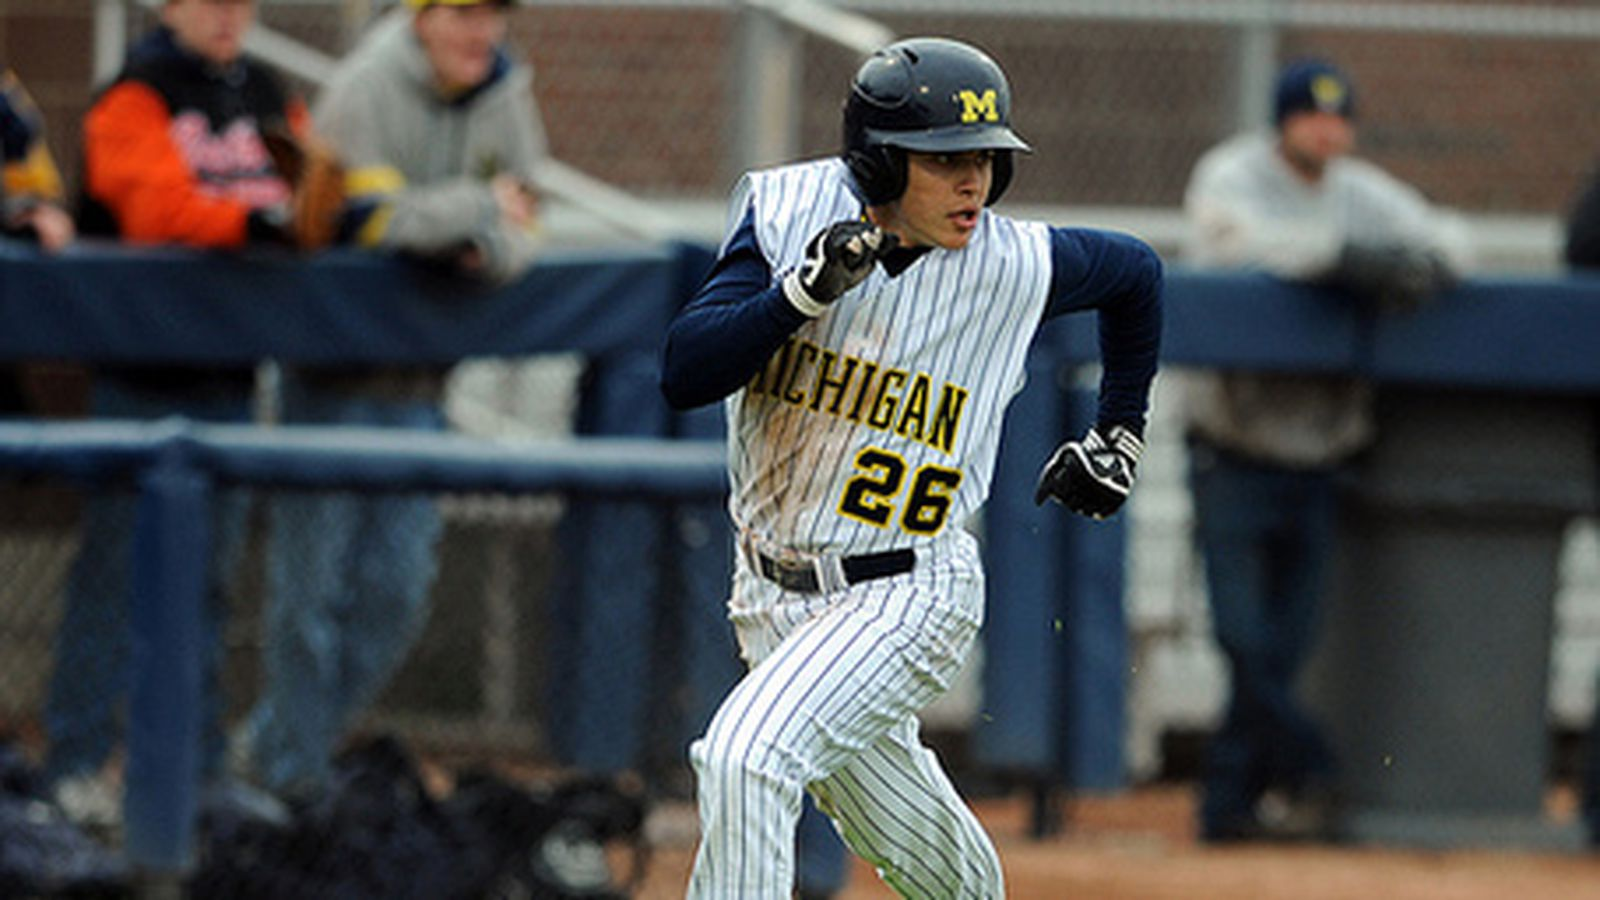 Michigan_baseball.0